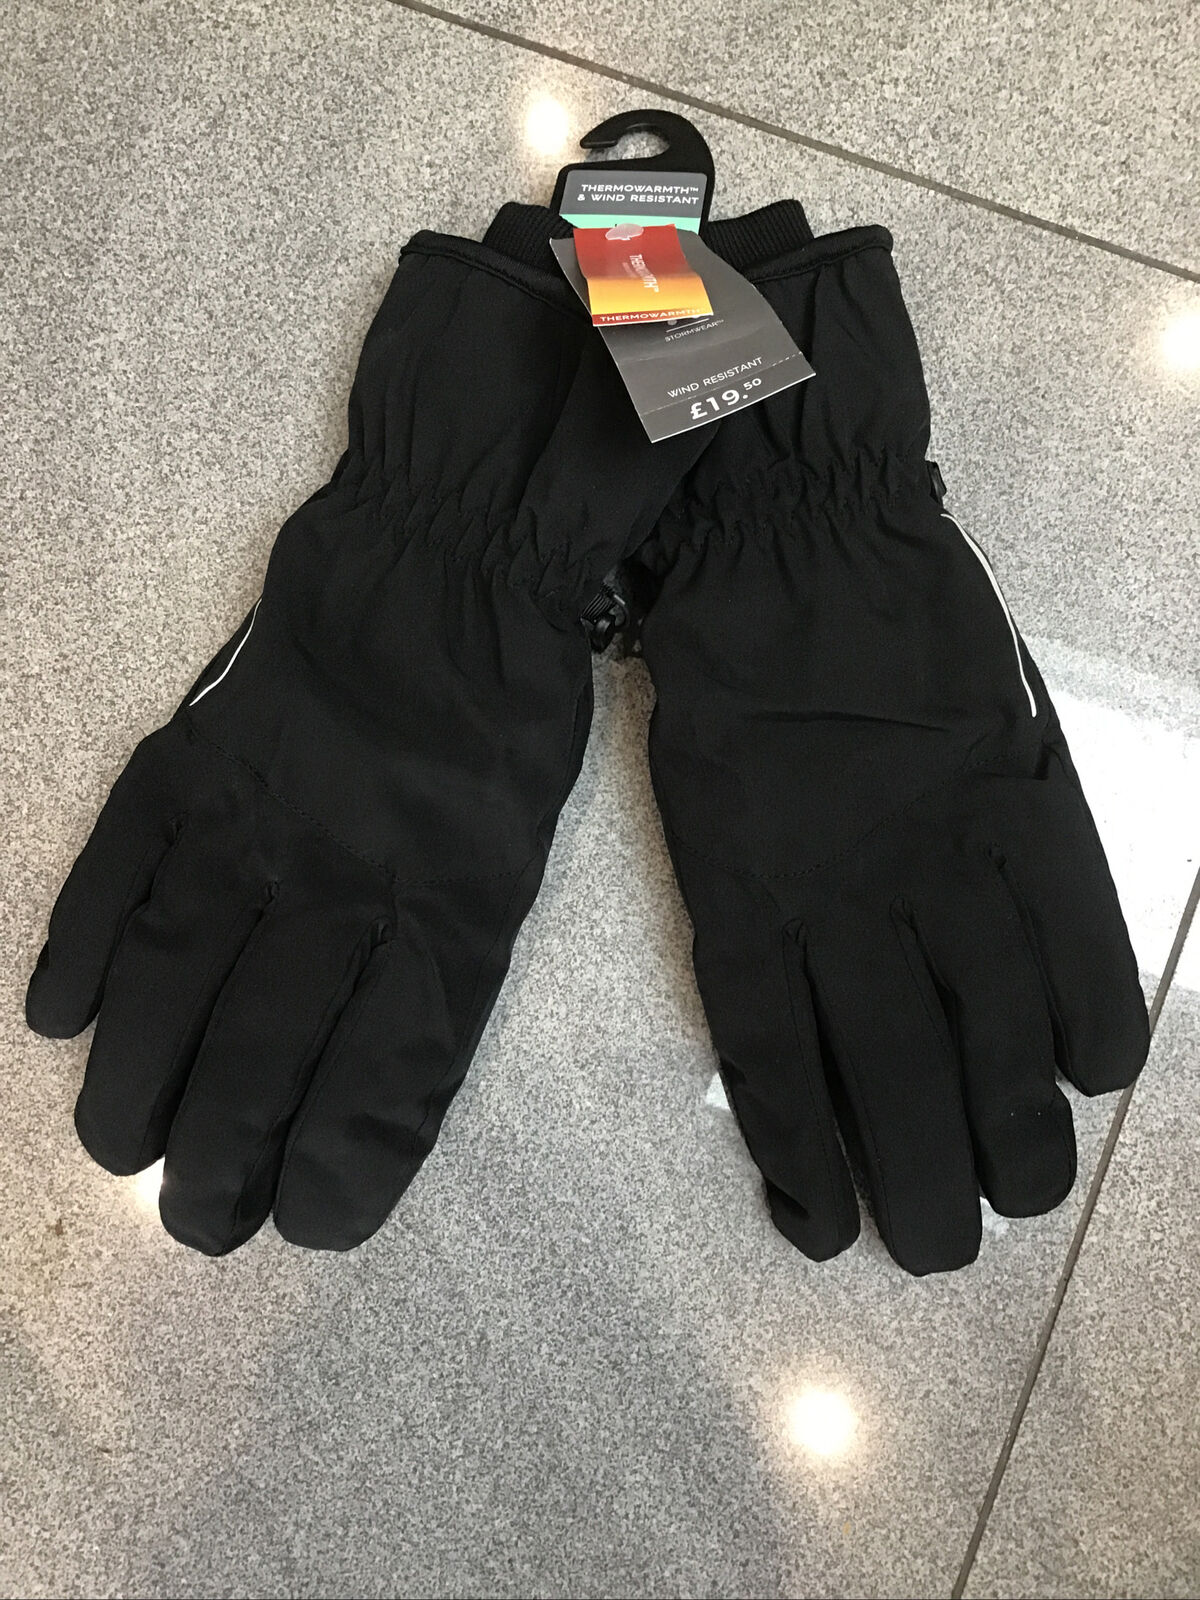 M&S Mens Black Thermowarmth & Wind Resistant Gloves L/XL Bnwt Rrp